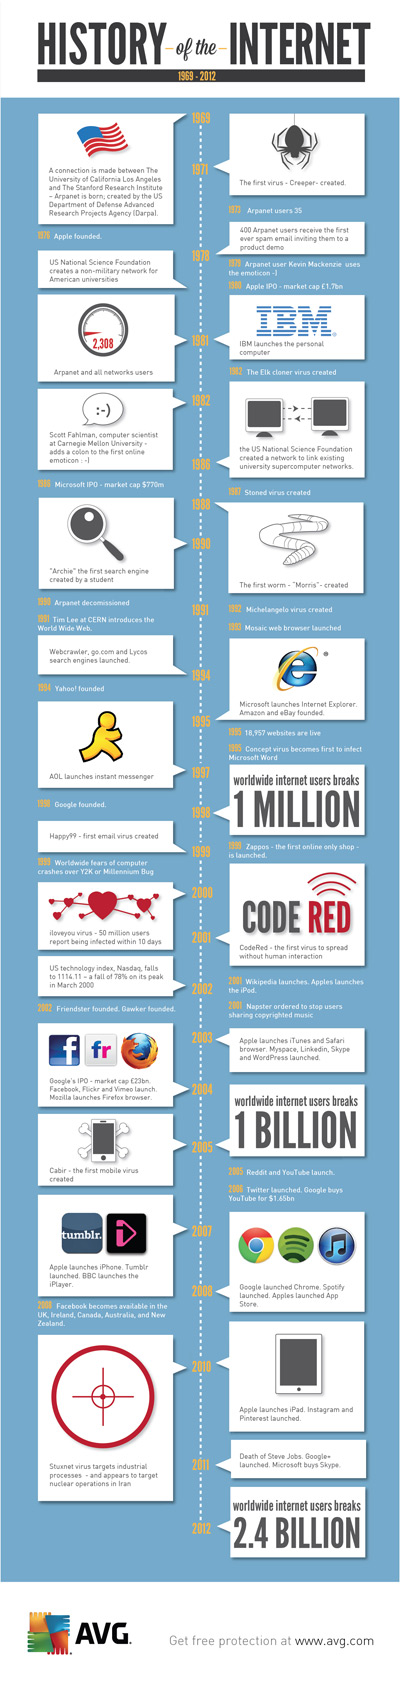 History of the Internet, bron: AVG